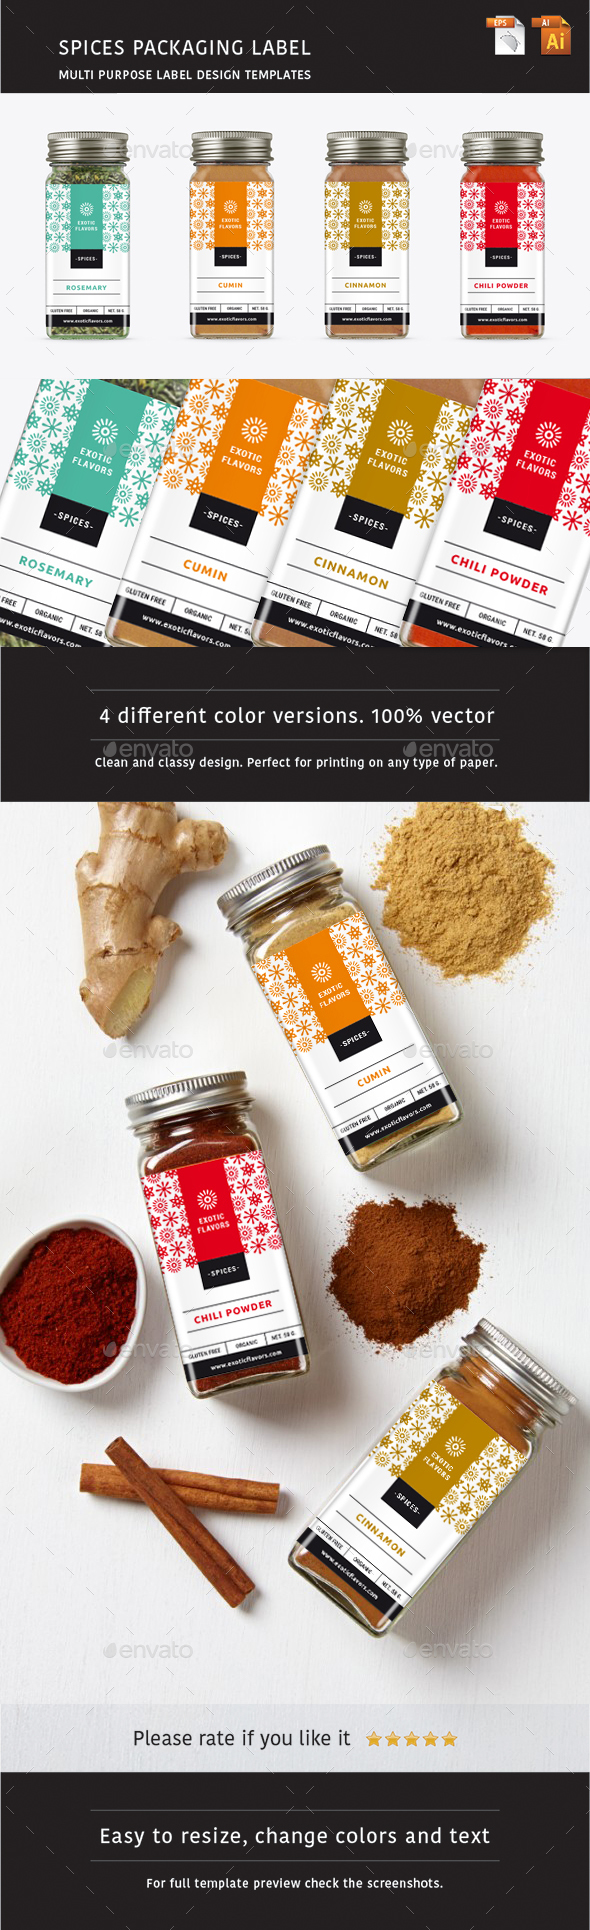 Spices Packaging Label - Packaging Print Templates